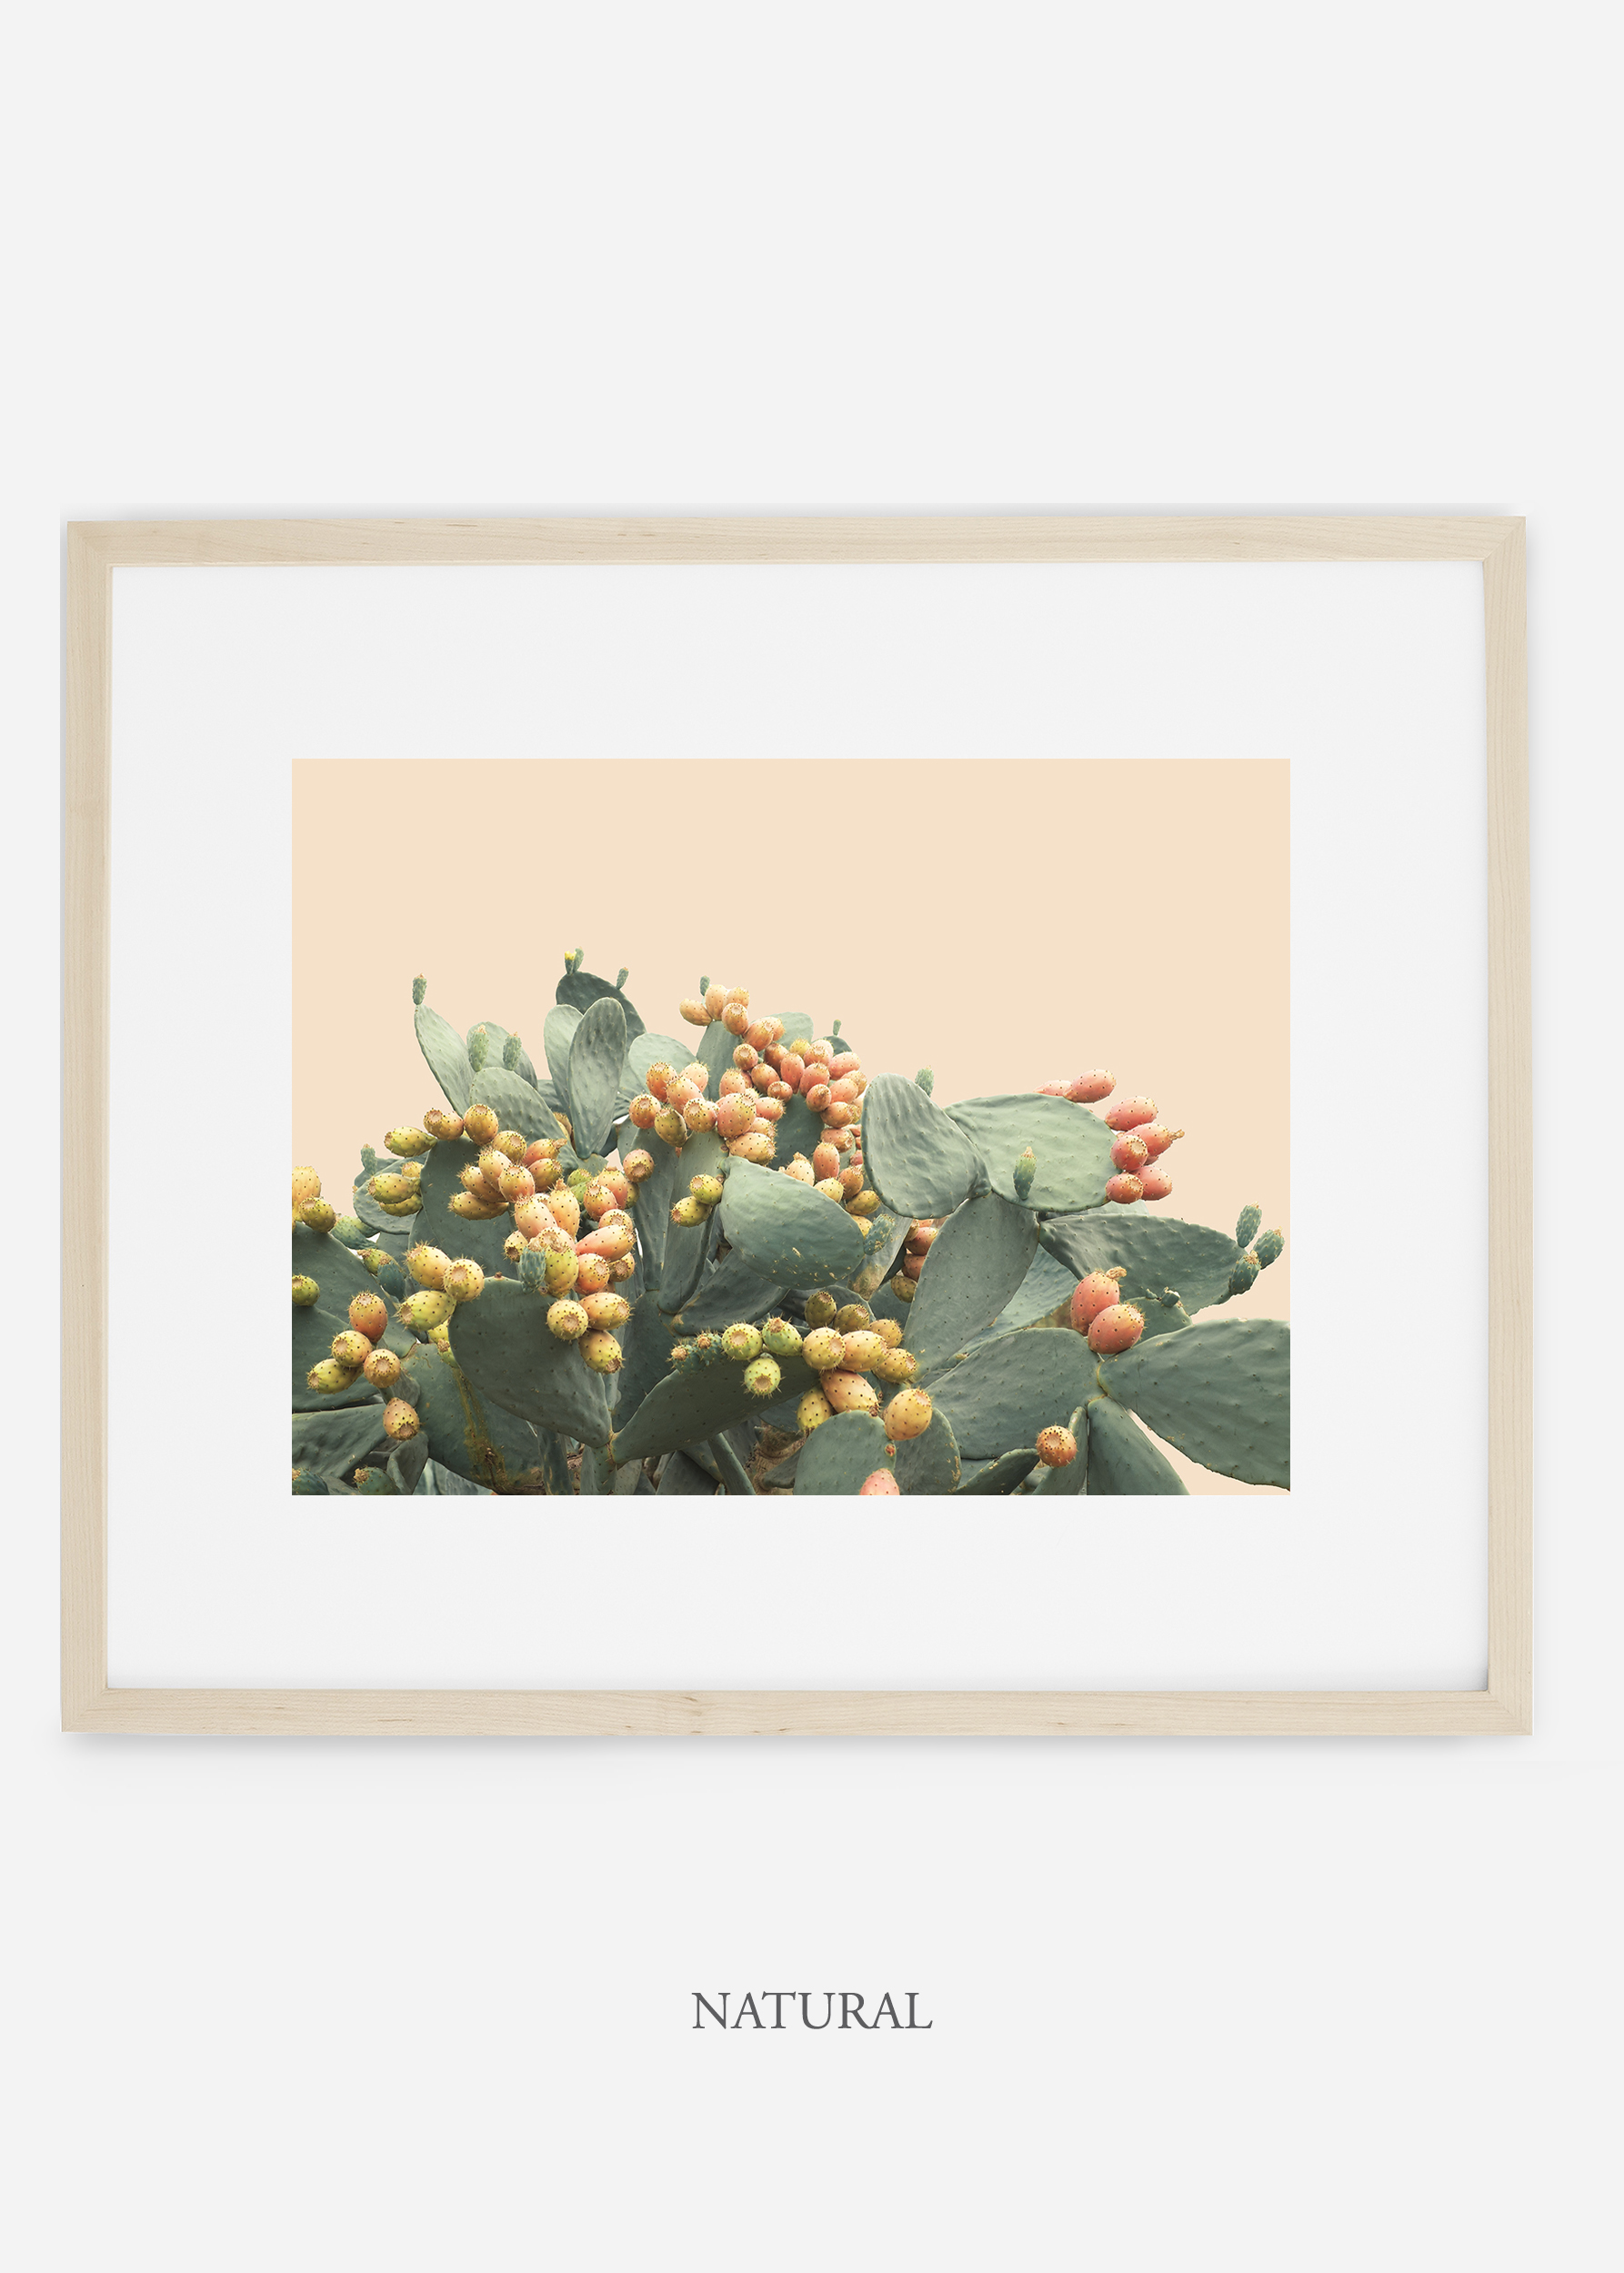 WilderCalifornia_interiordesign_art_naturalframe_PricklyPearNo.1.jpg